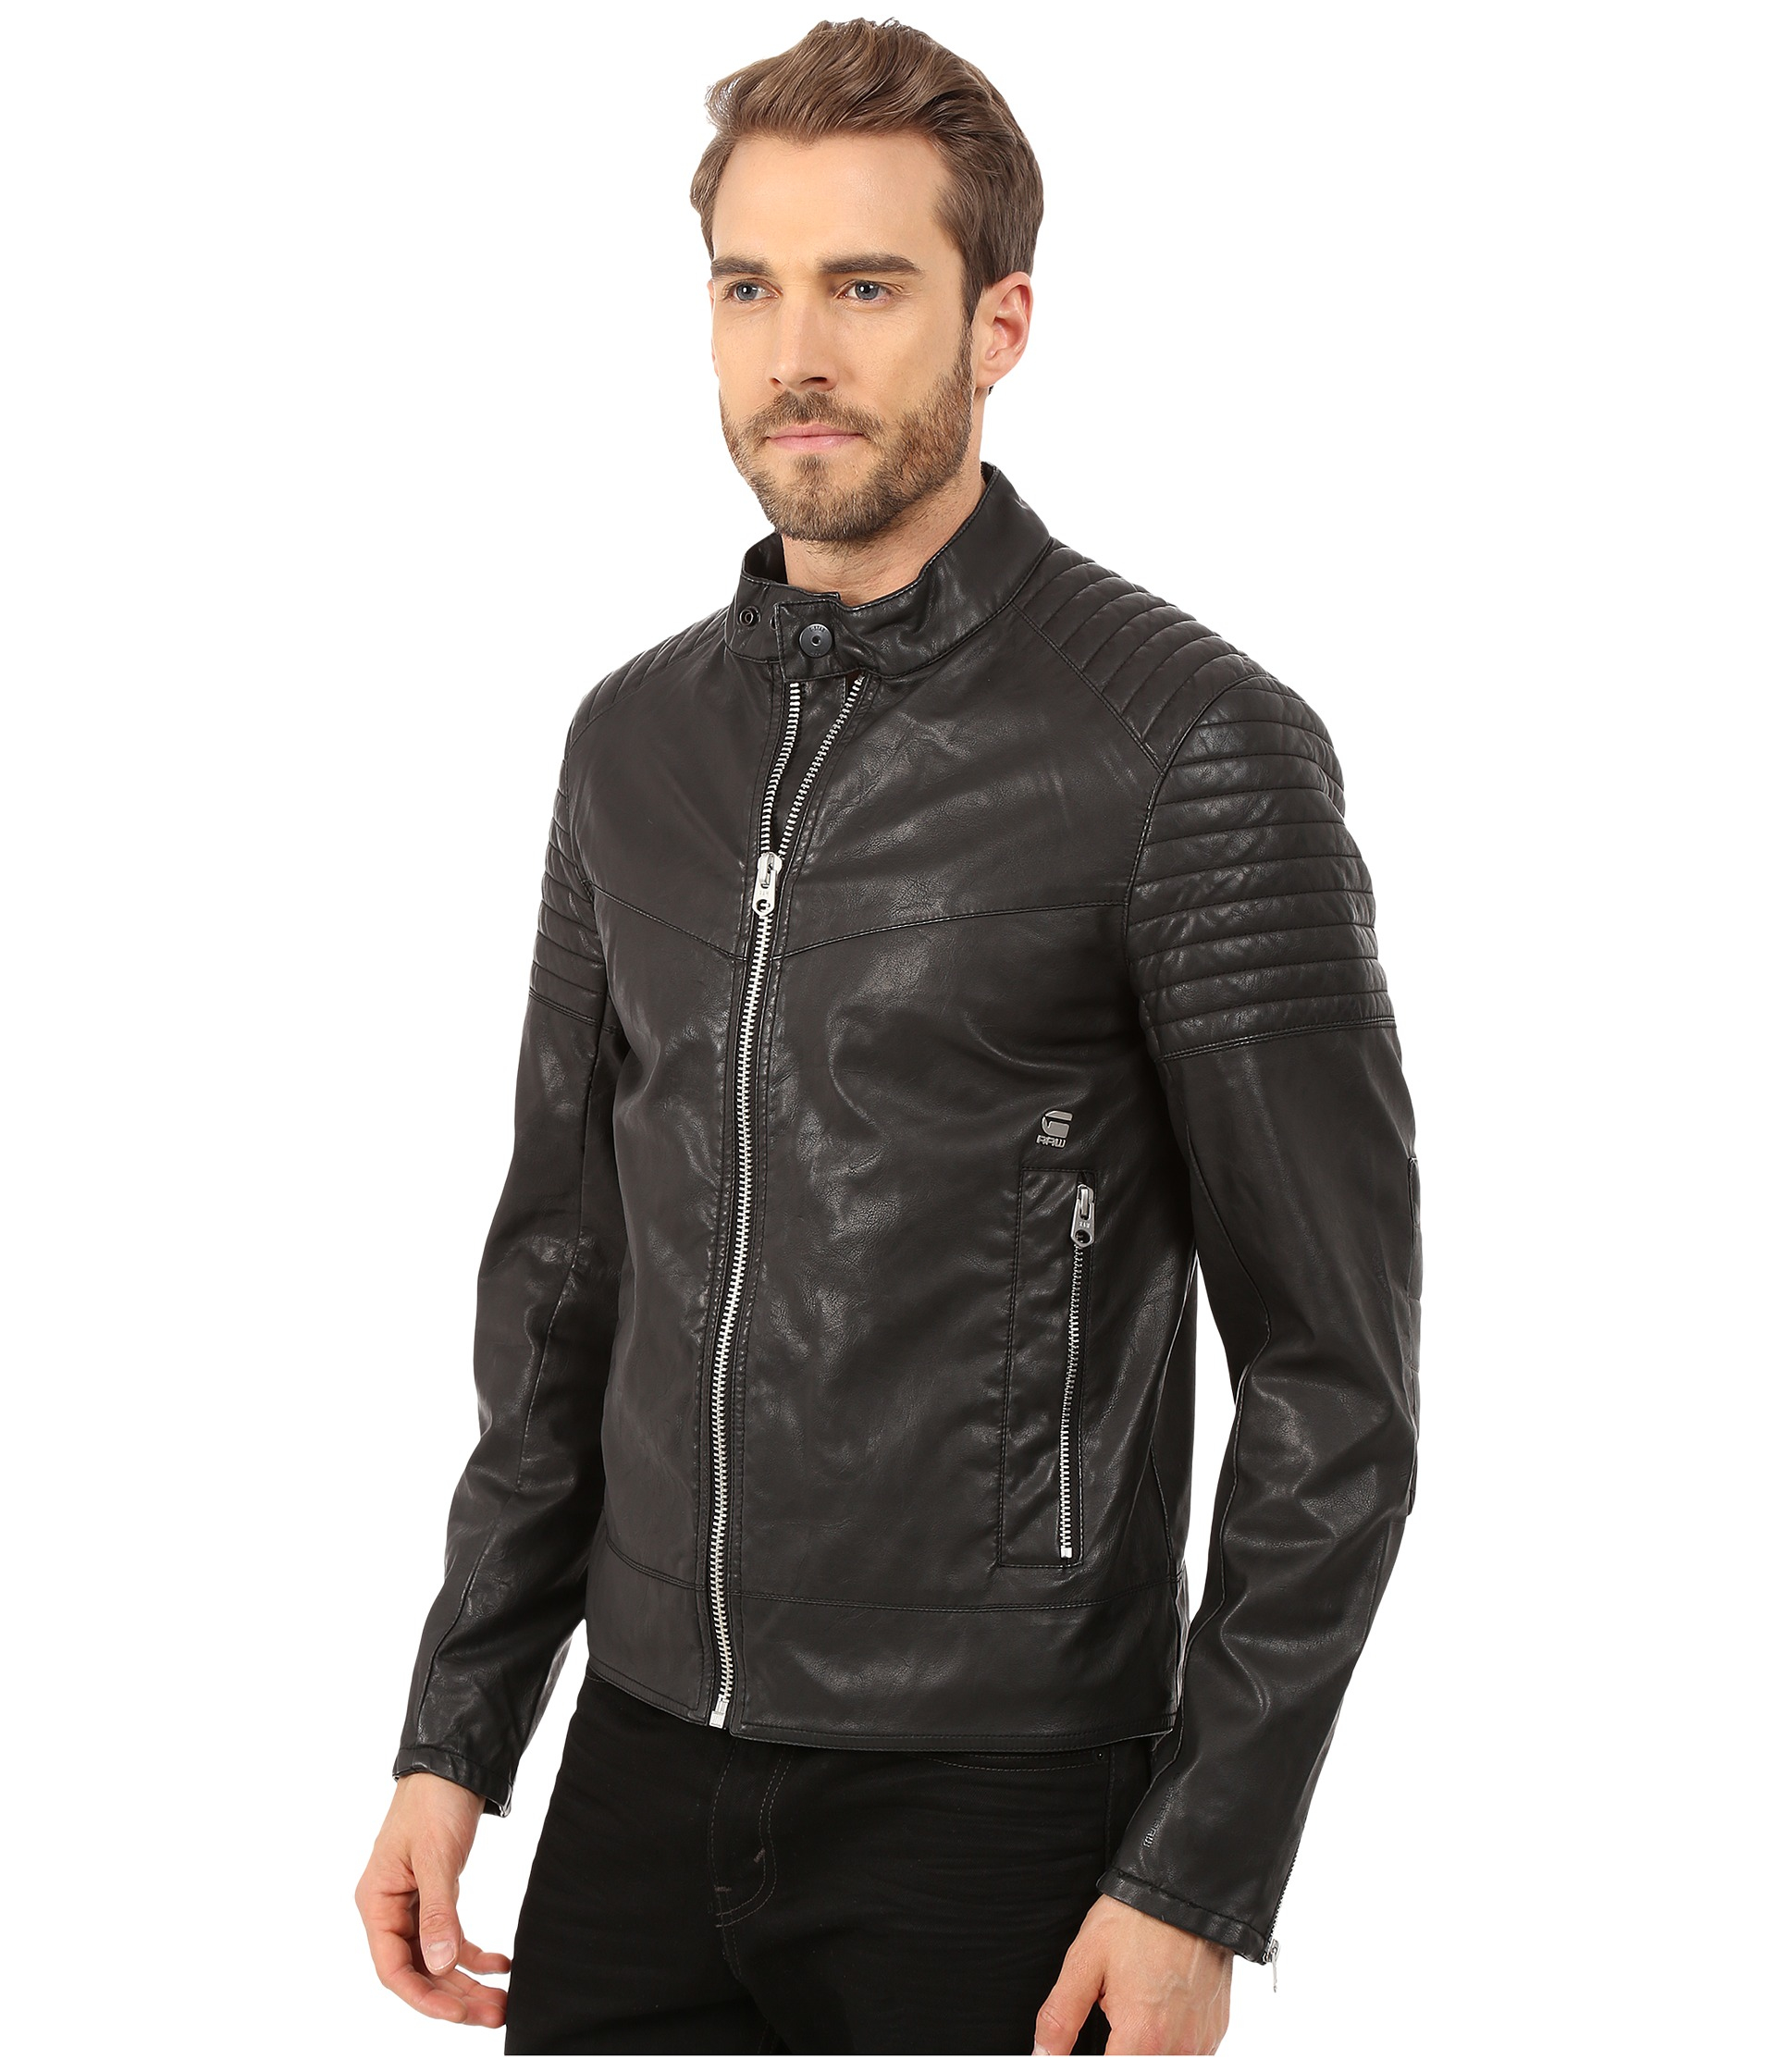 g star raw jacke herren more from g star g star jackets jackets on sale all jackets star